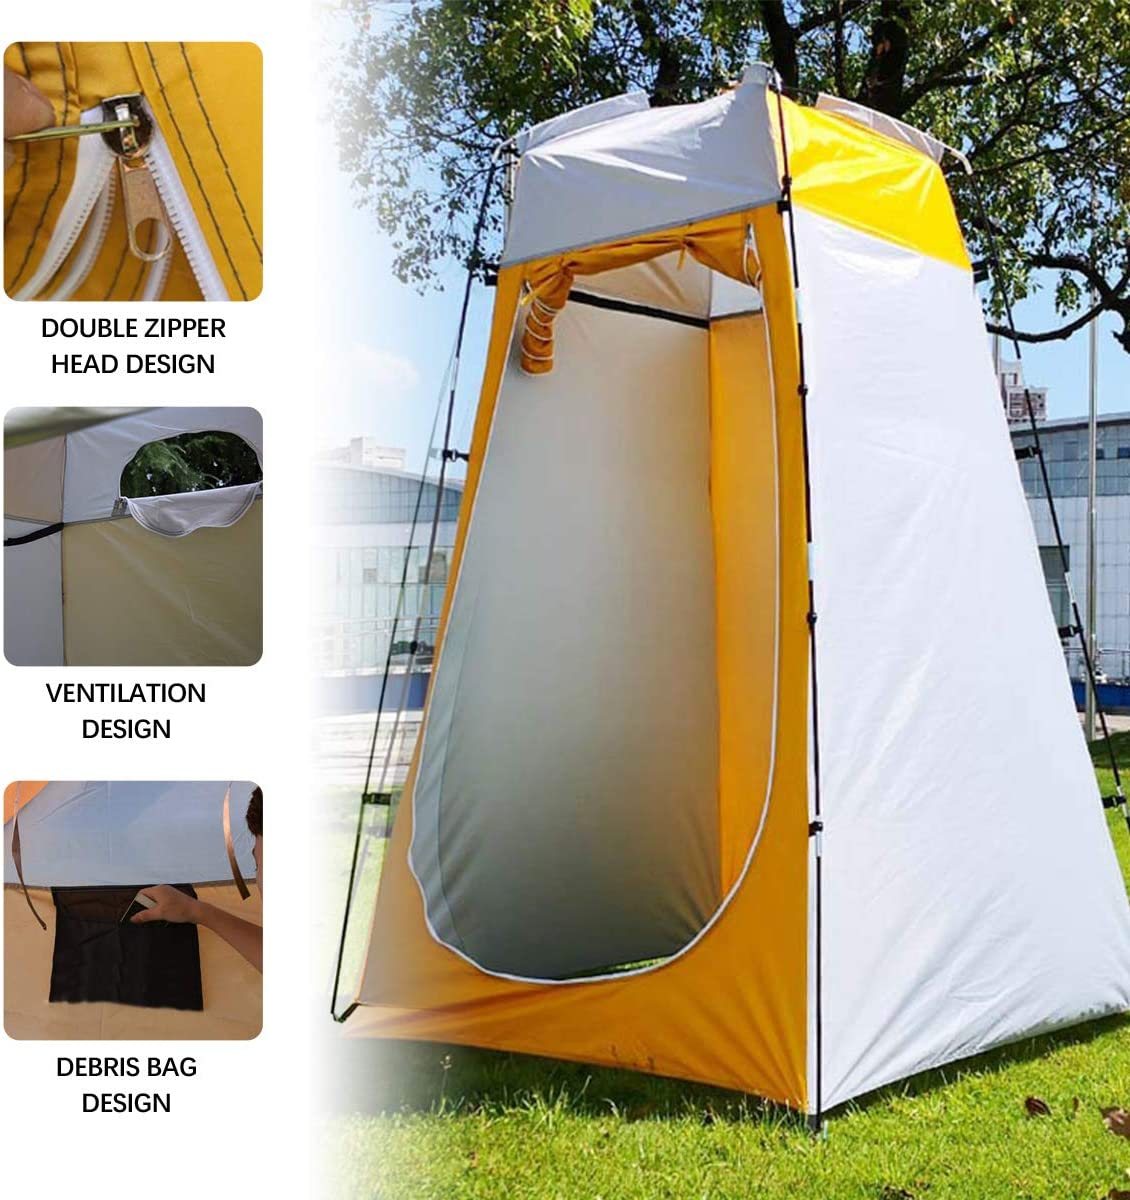 Qdreclod Outdoor Privacy Tent Draagbare Douche Tent Dressing